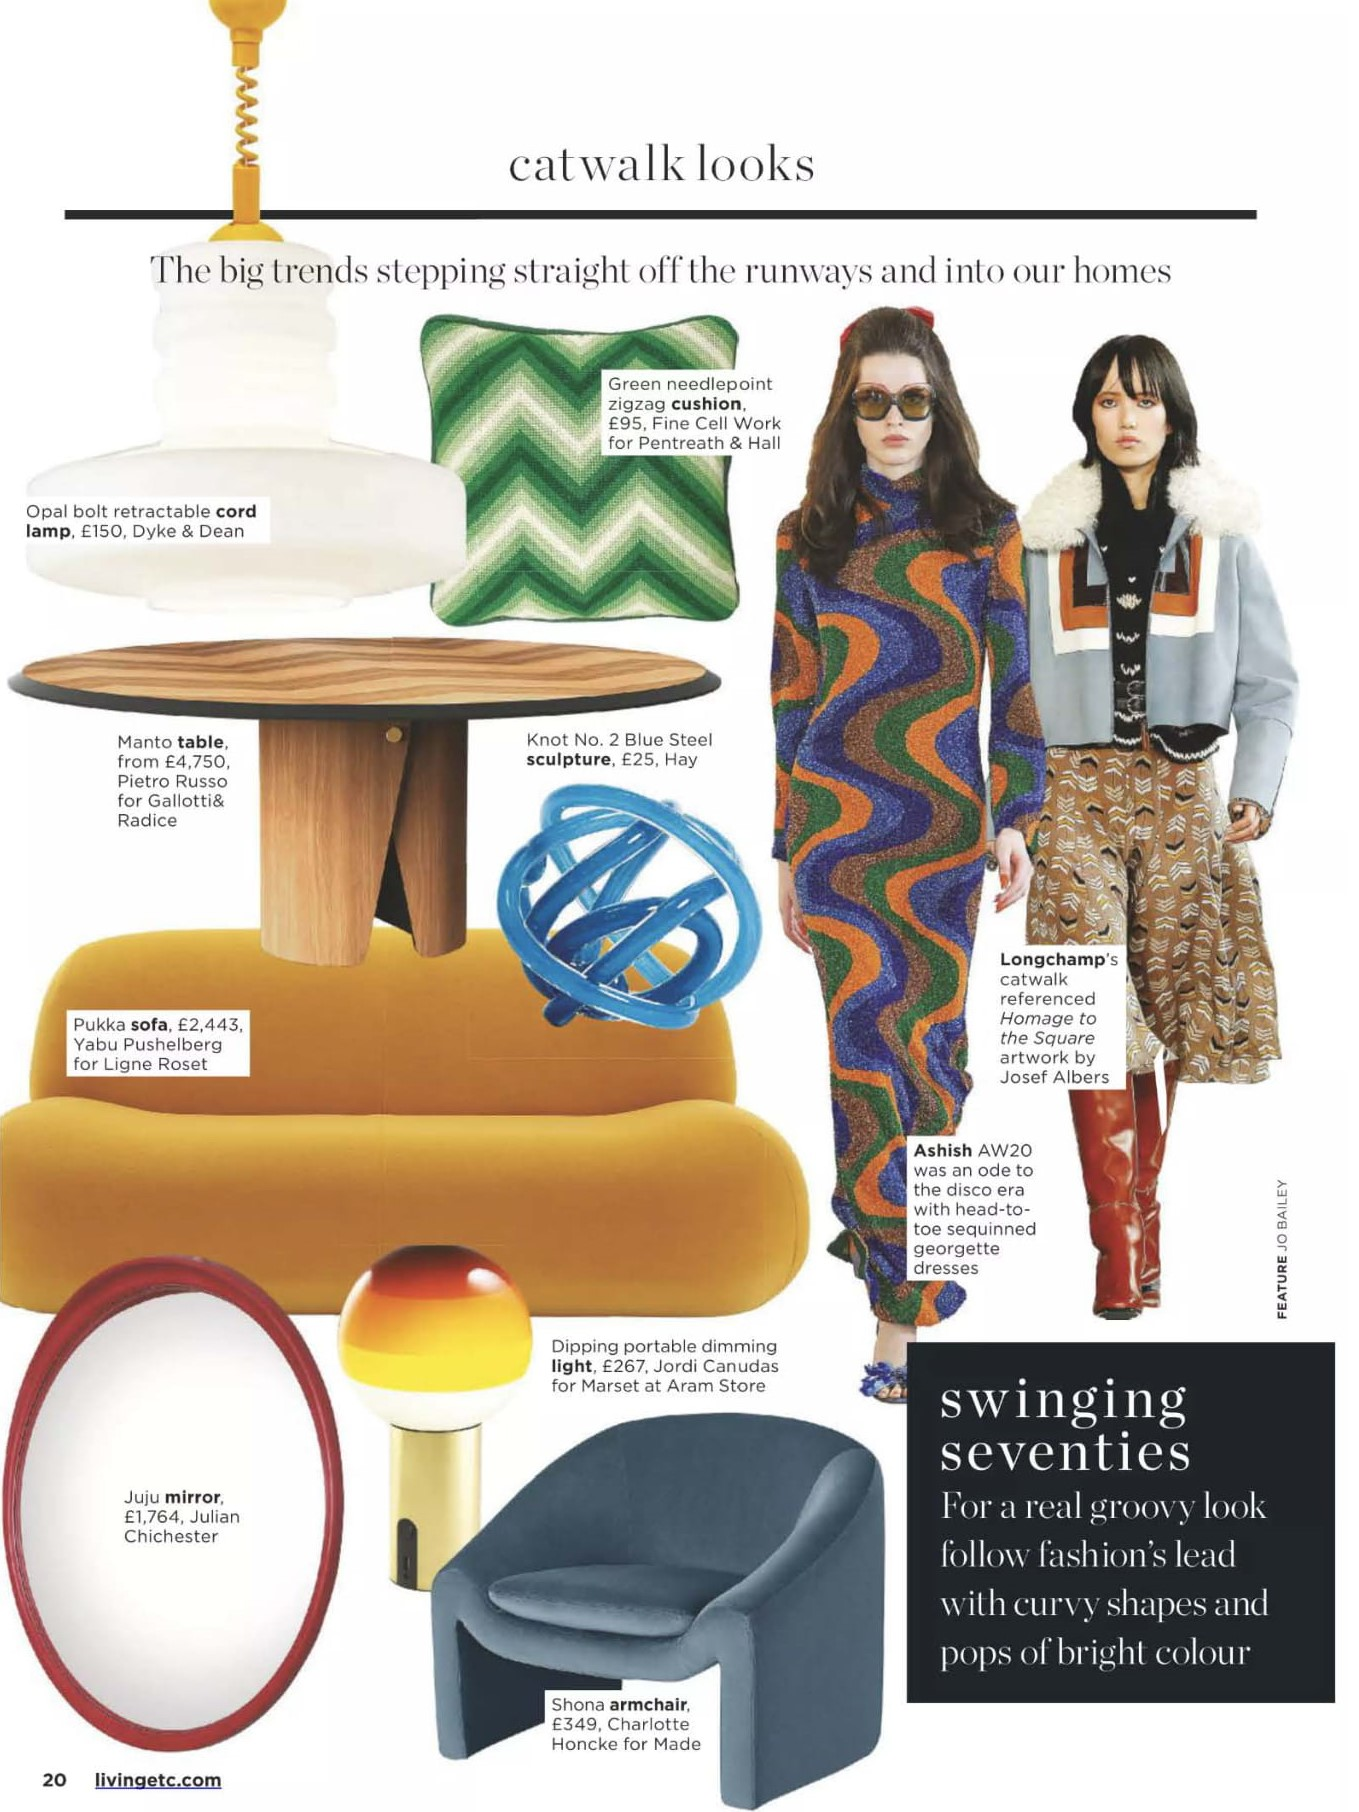 Two's company in Living Etc's Catwalk looks, first Ligne Roset's Pukka in swinging seventies...